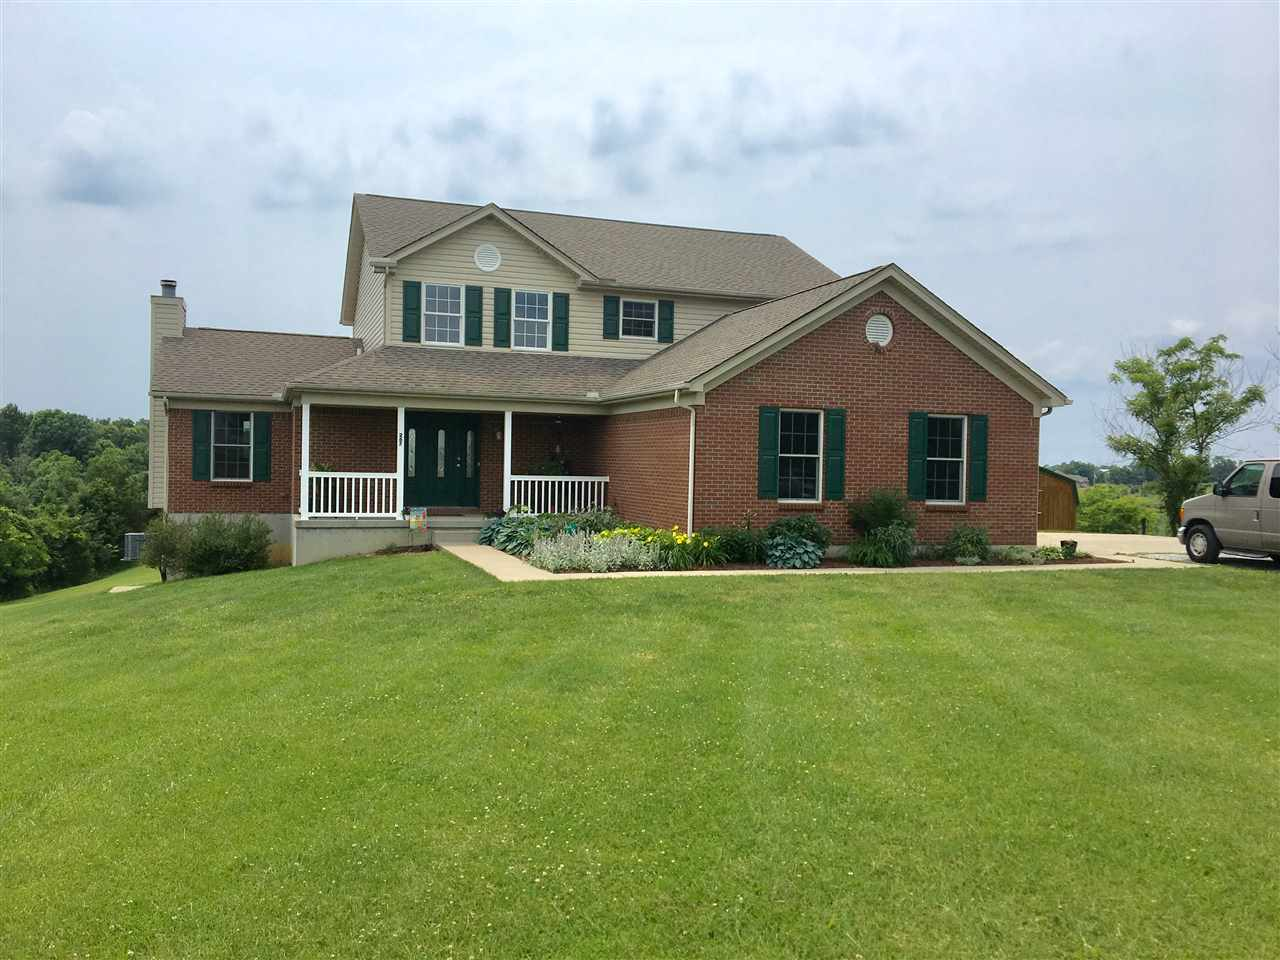 Photo 1 for 267 Ethel Dr Foster, KY 41043